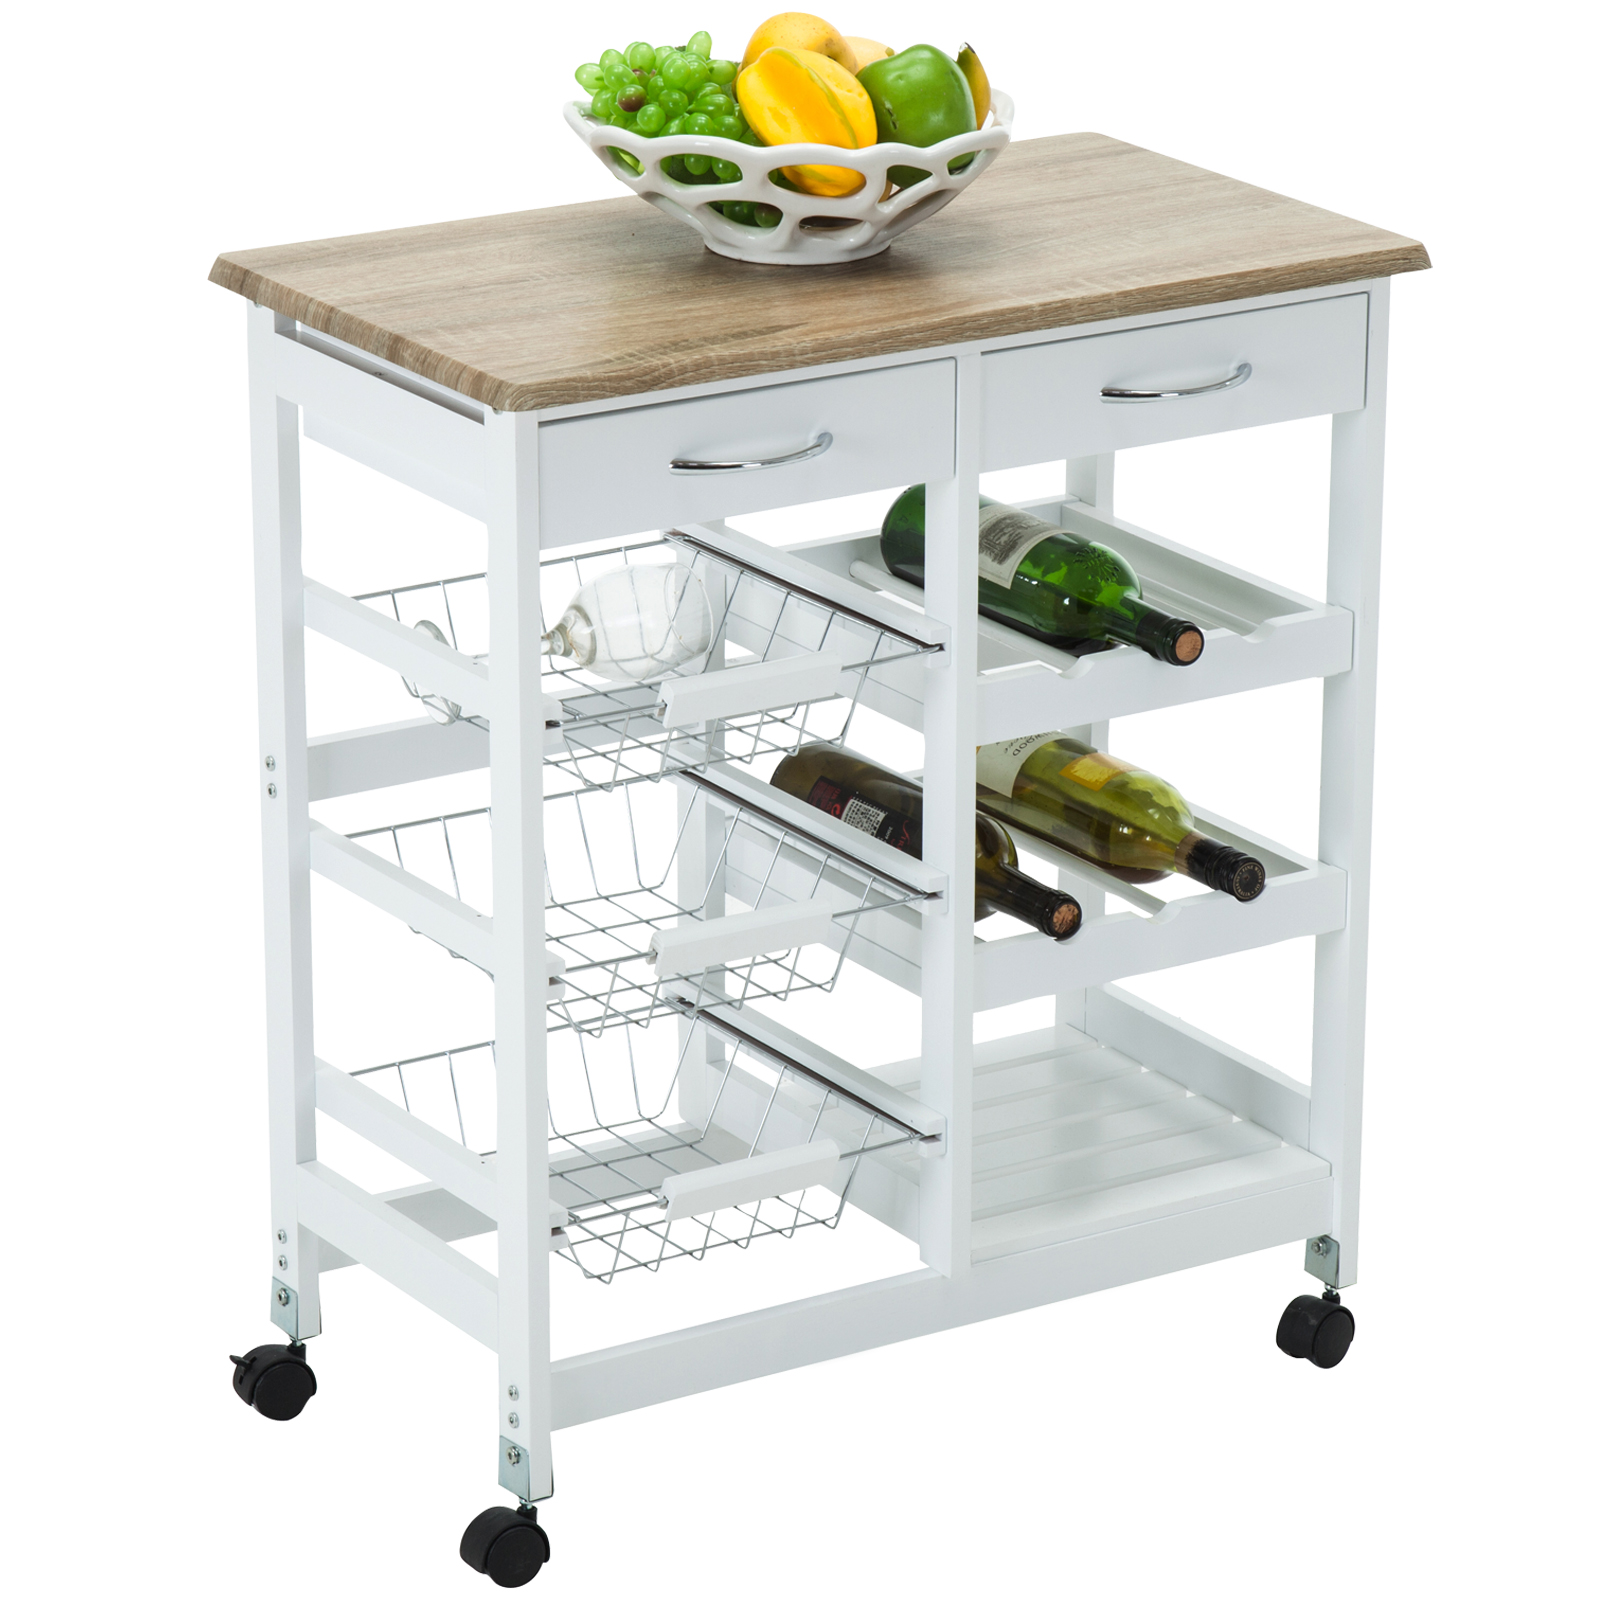 4 Family Kitchen Island Cart Trolley Portable Rolling Storage Table with Draw